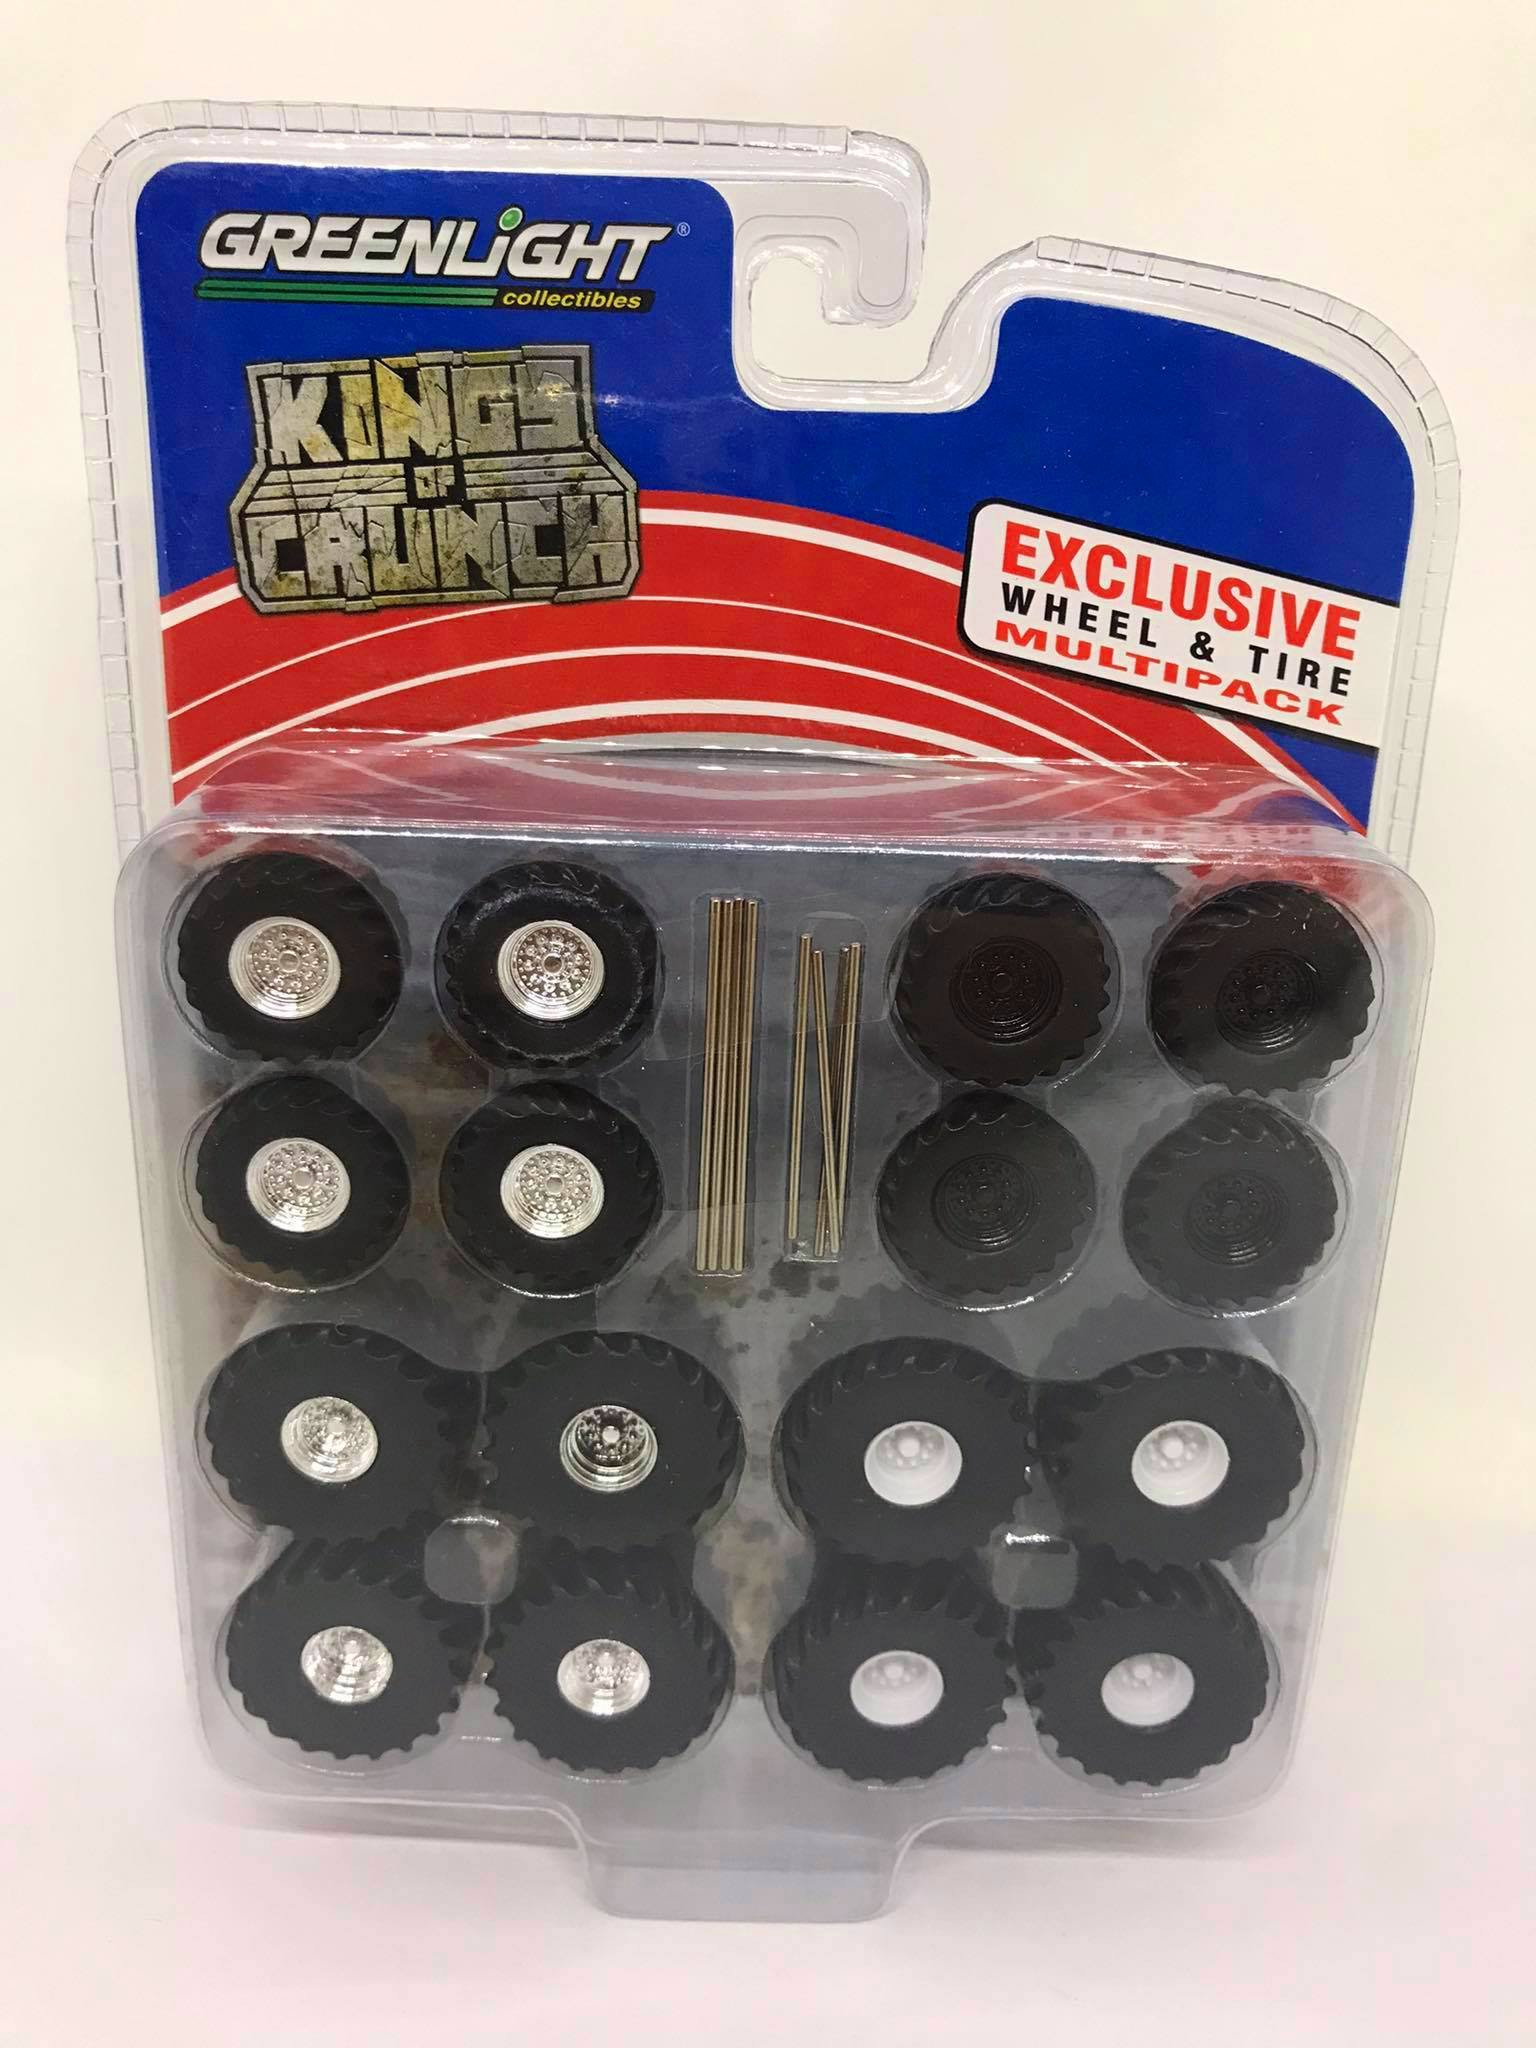 Greenlight - Exclusive Wheel & Tire Multipack - Kings of Crunch